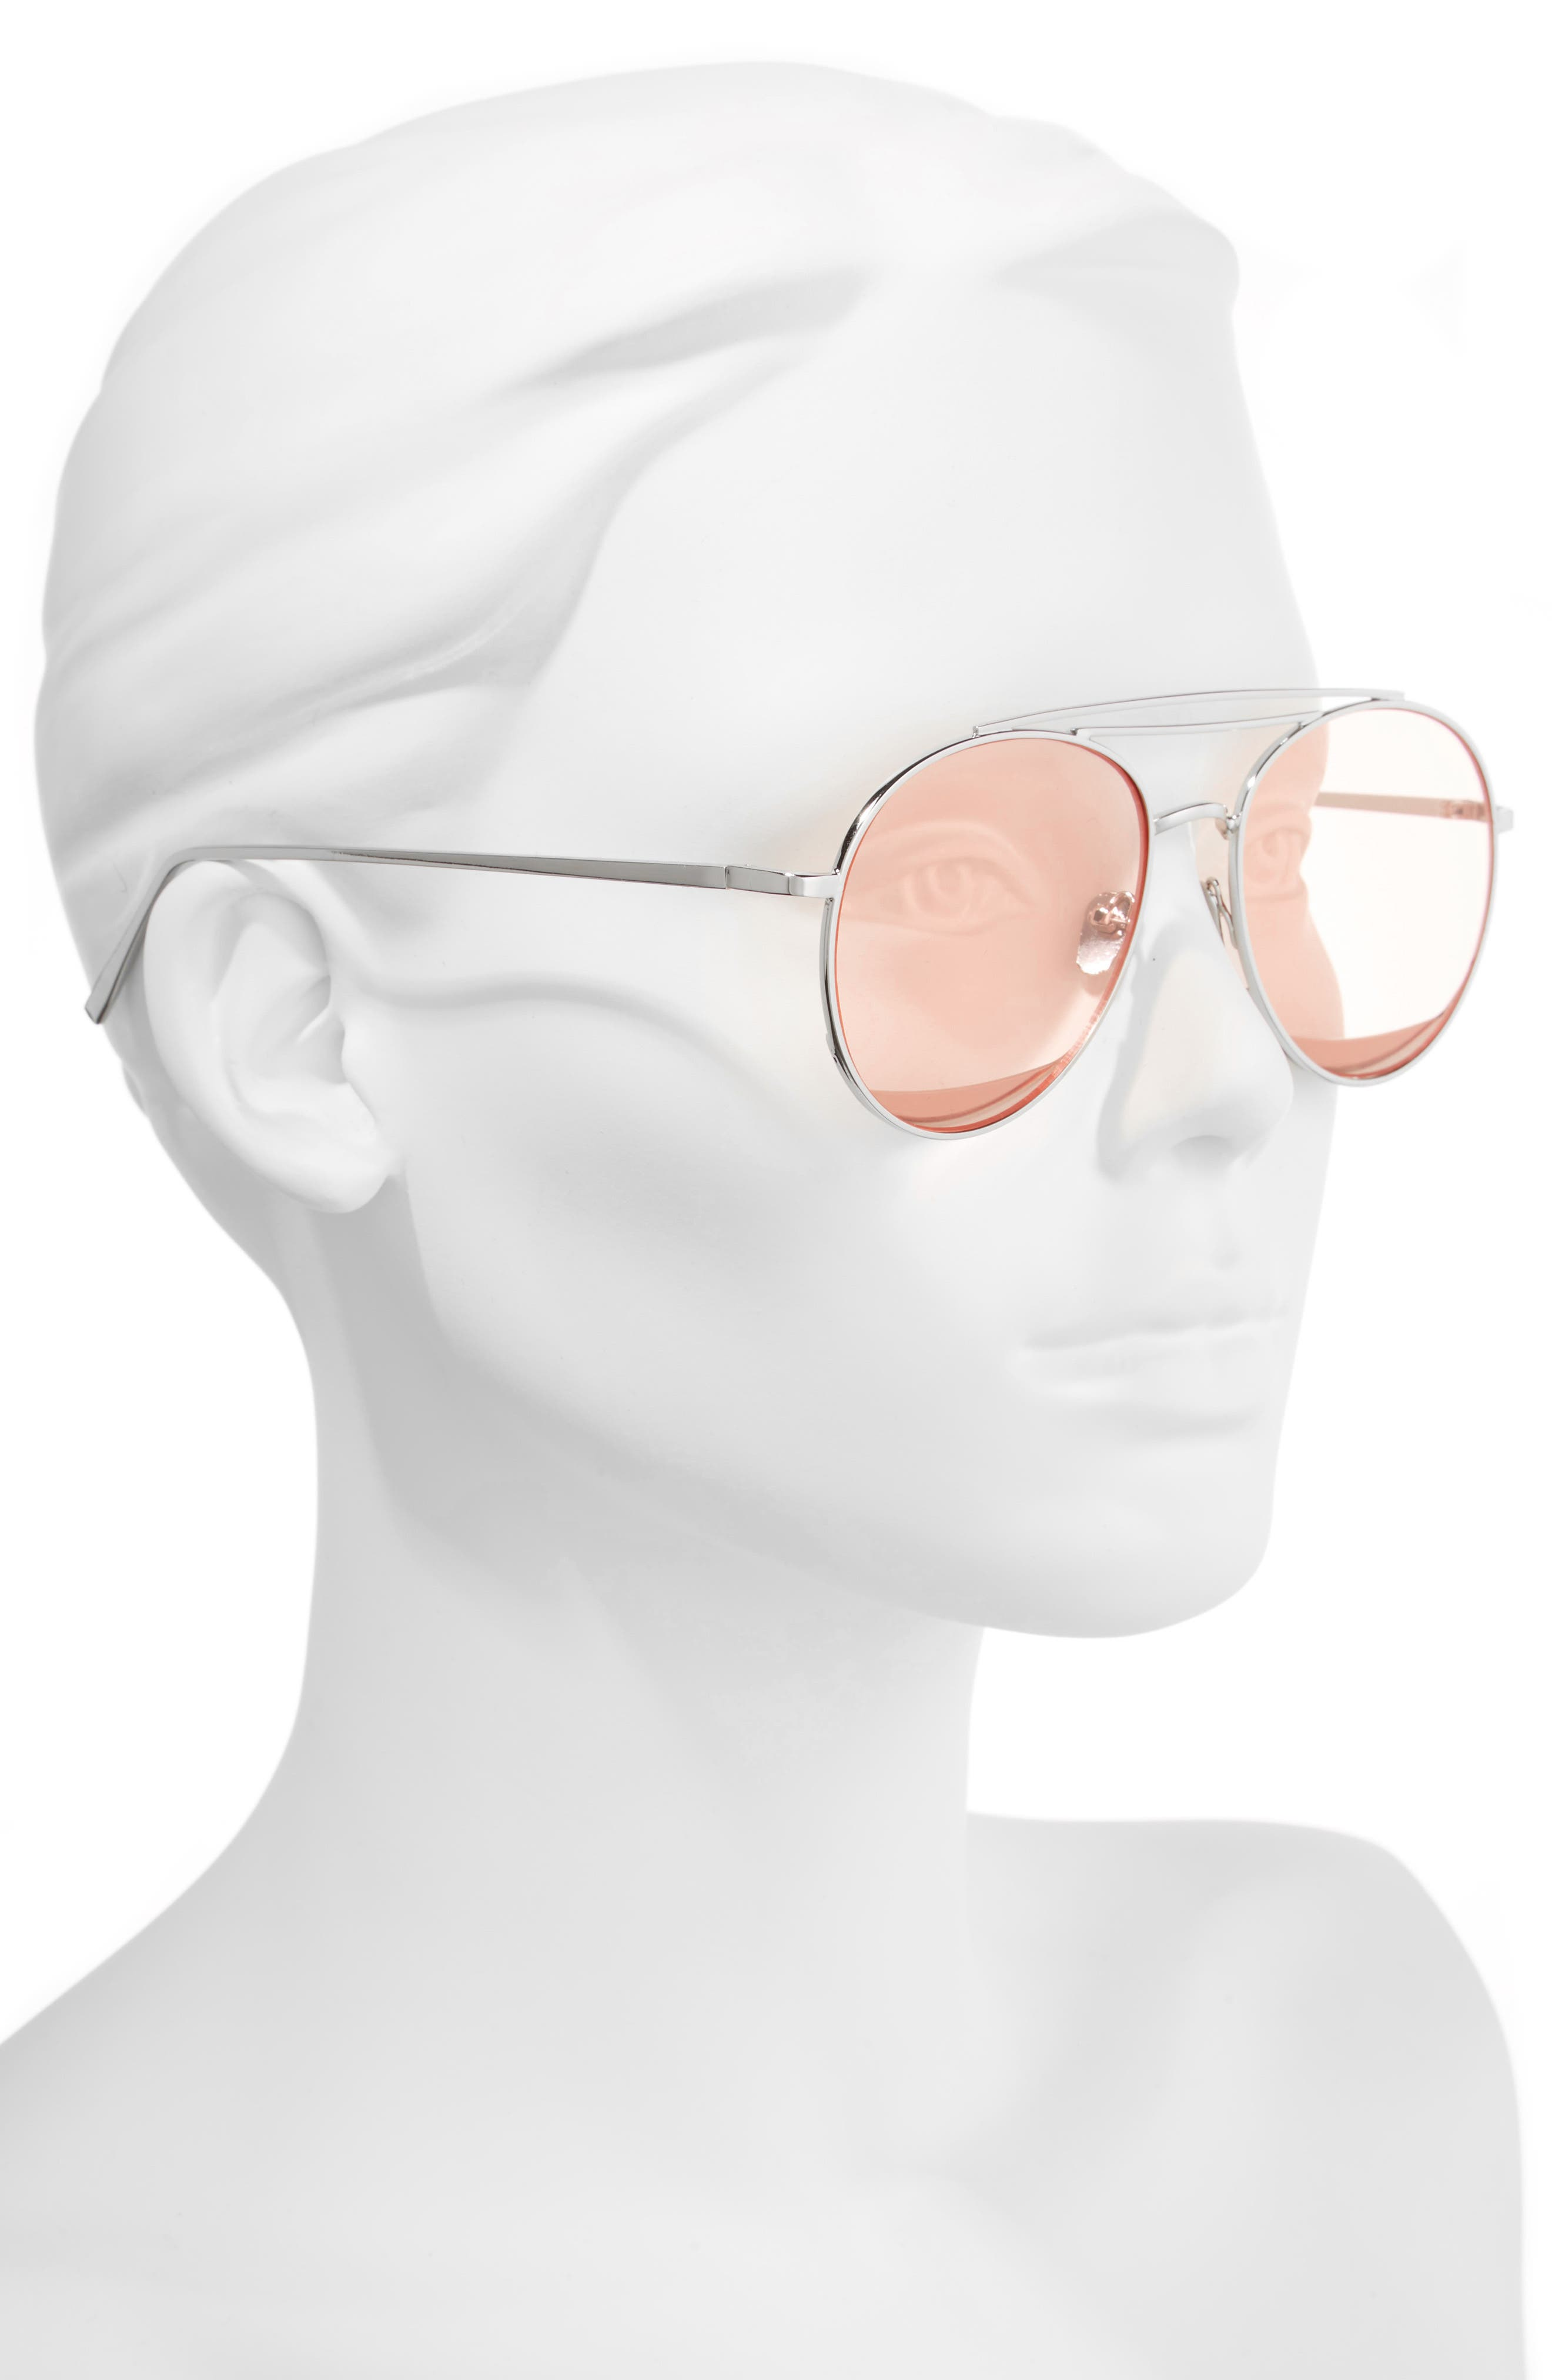 SHADY LADY,                             The Maddox 62mm Rimless Aviator Sunglasses,                             Alternate thumbnail 2, color,                             650